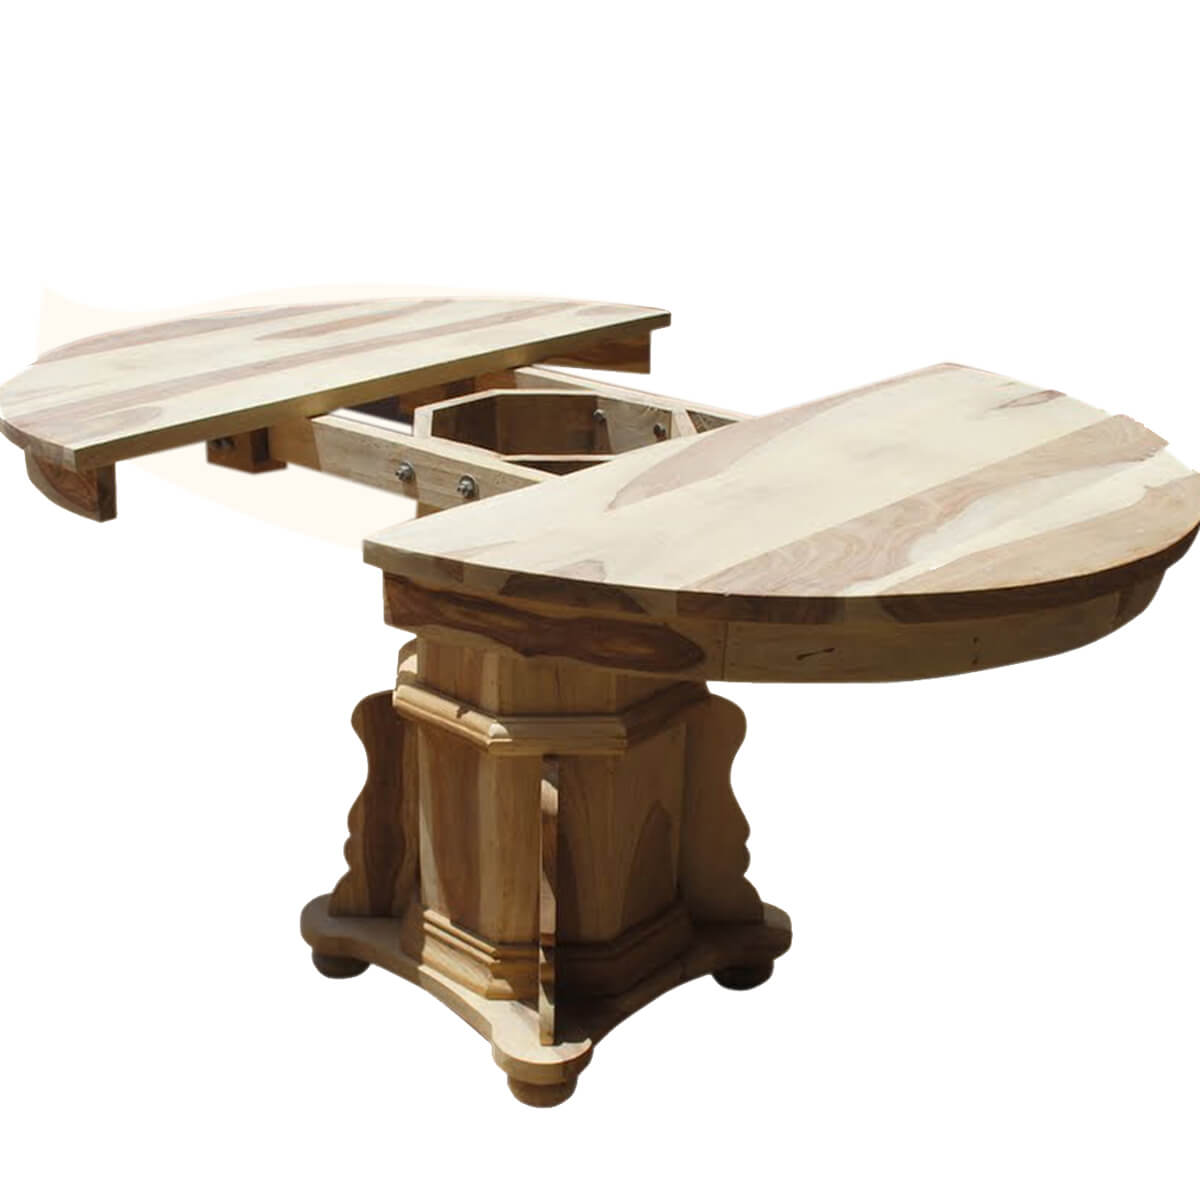 Dallas ranch solid wood pedestal round dining table w for Round dining table